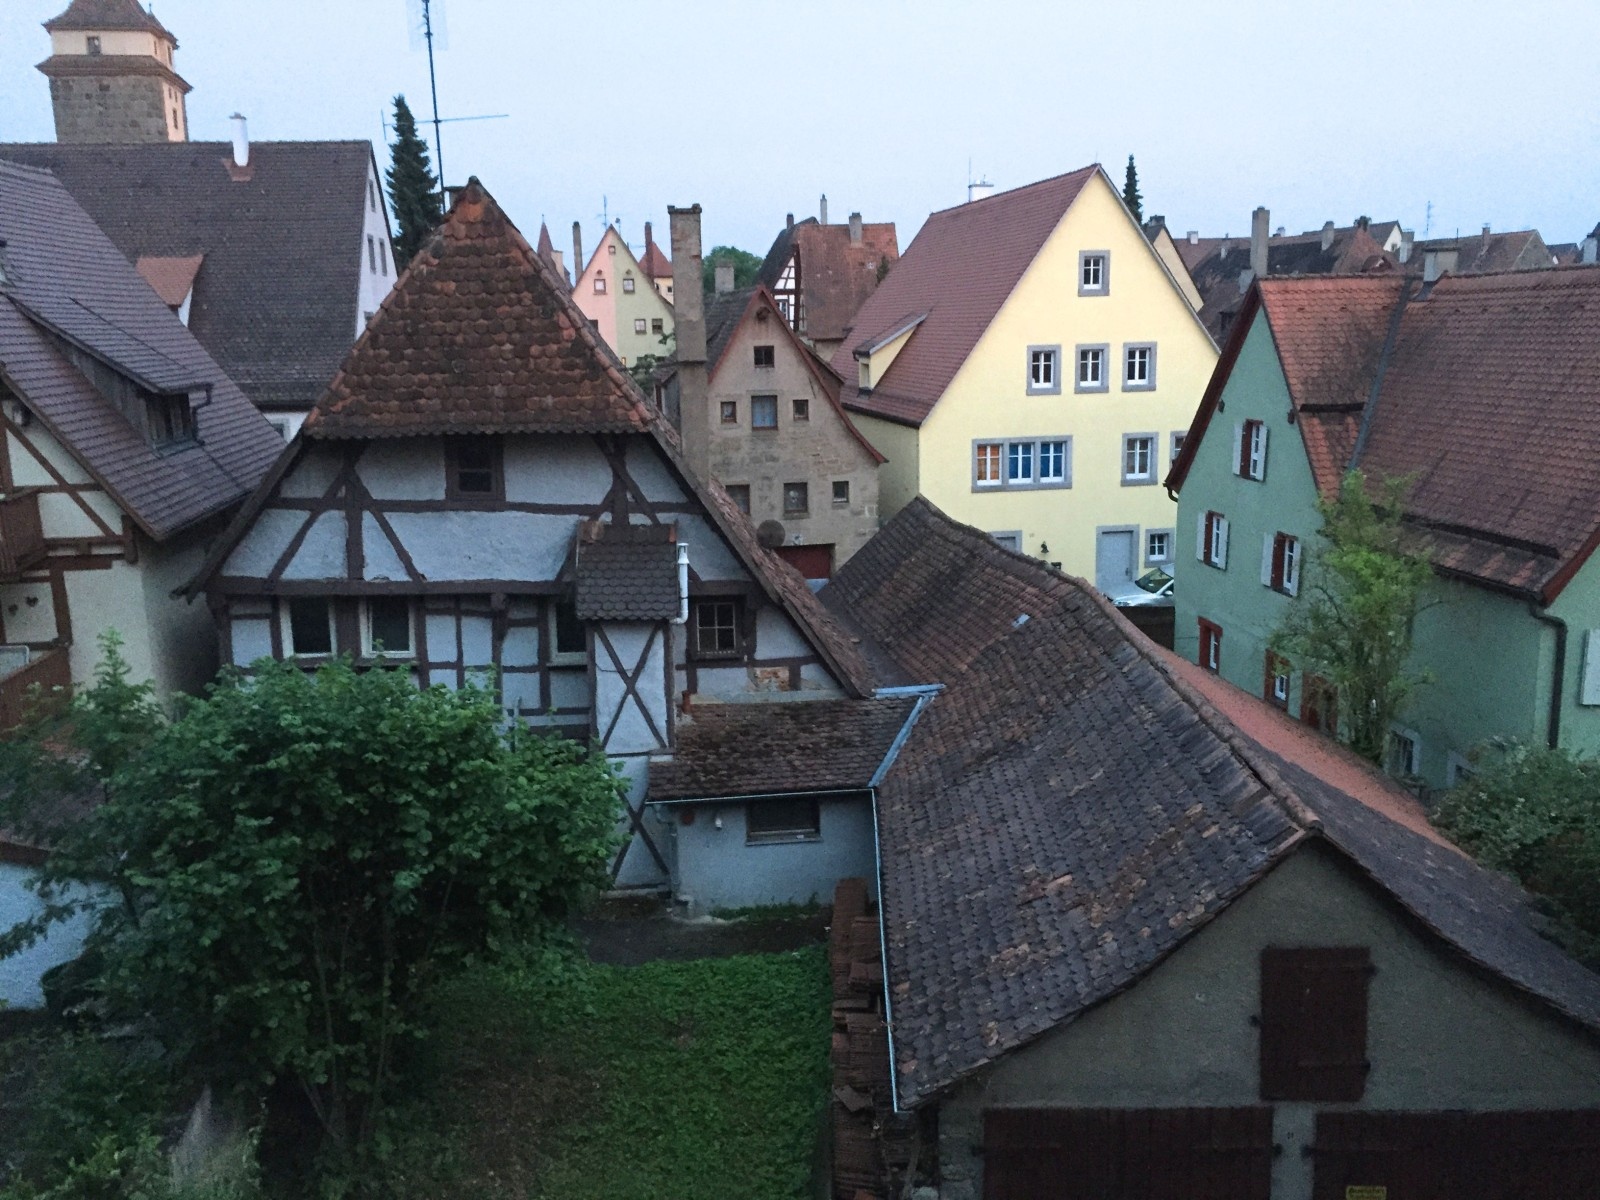 Rothenberg Rooftops from the city Wall.